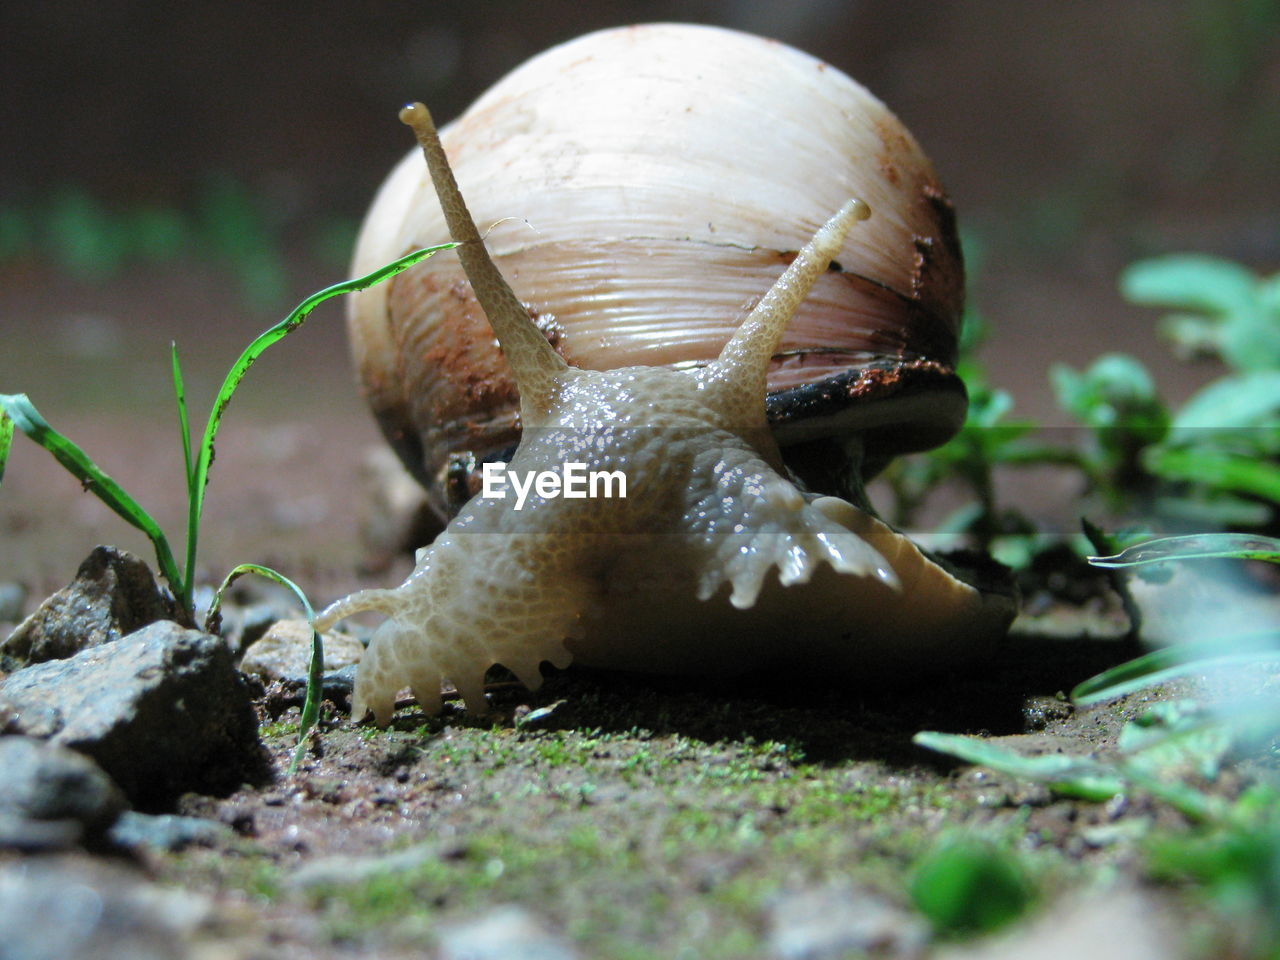 Surface Level Shot Of Snail On Field